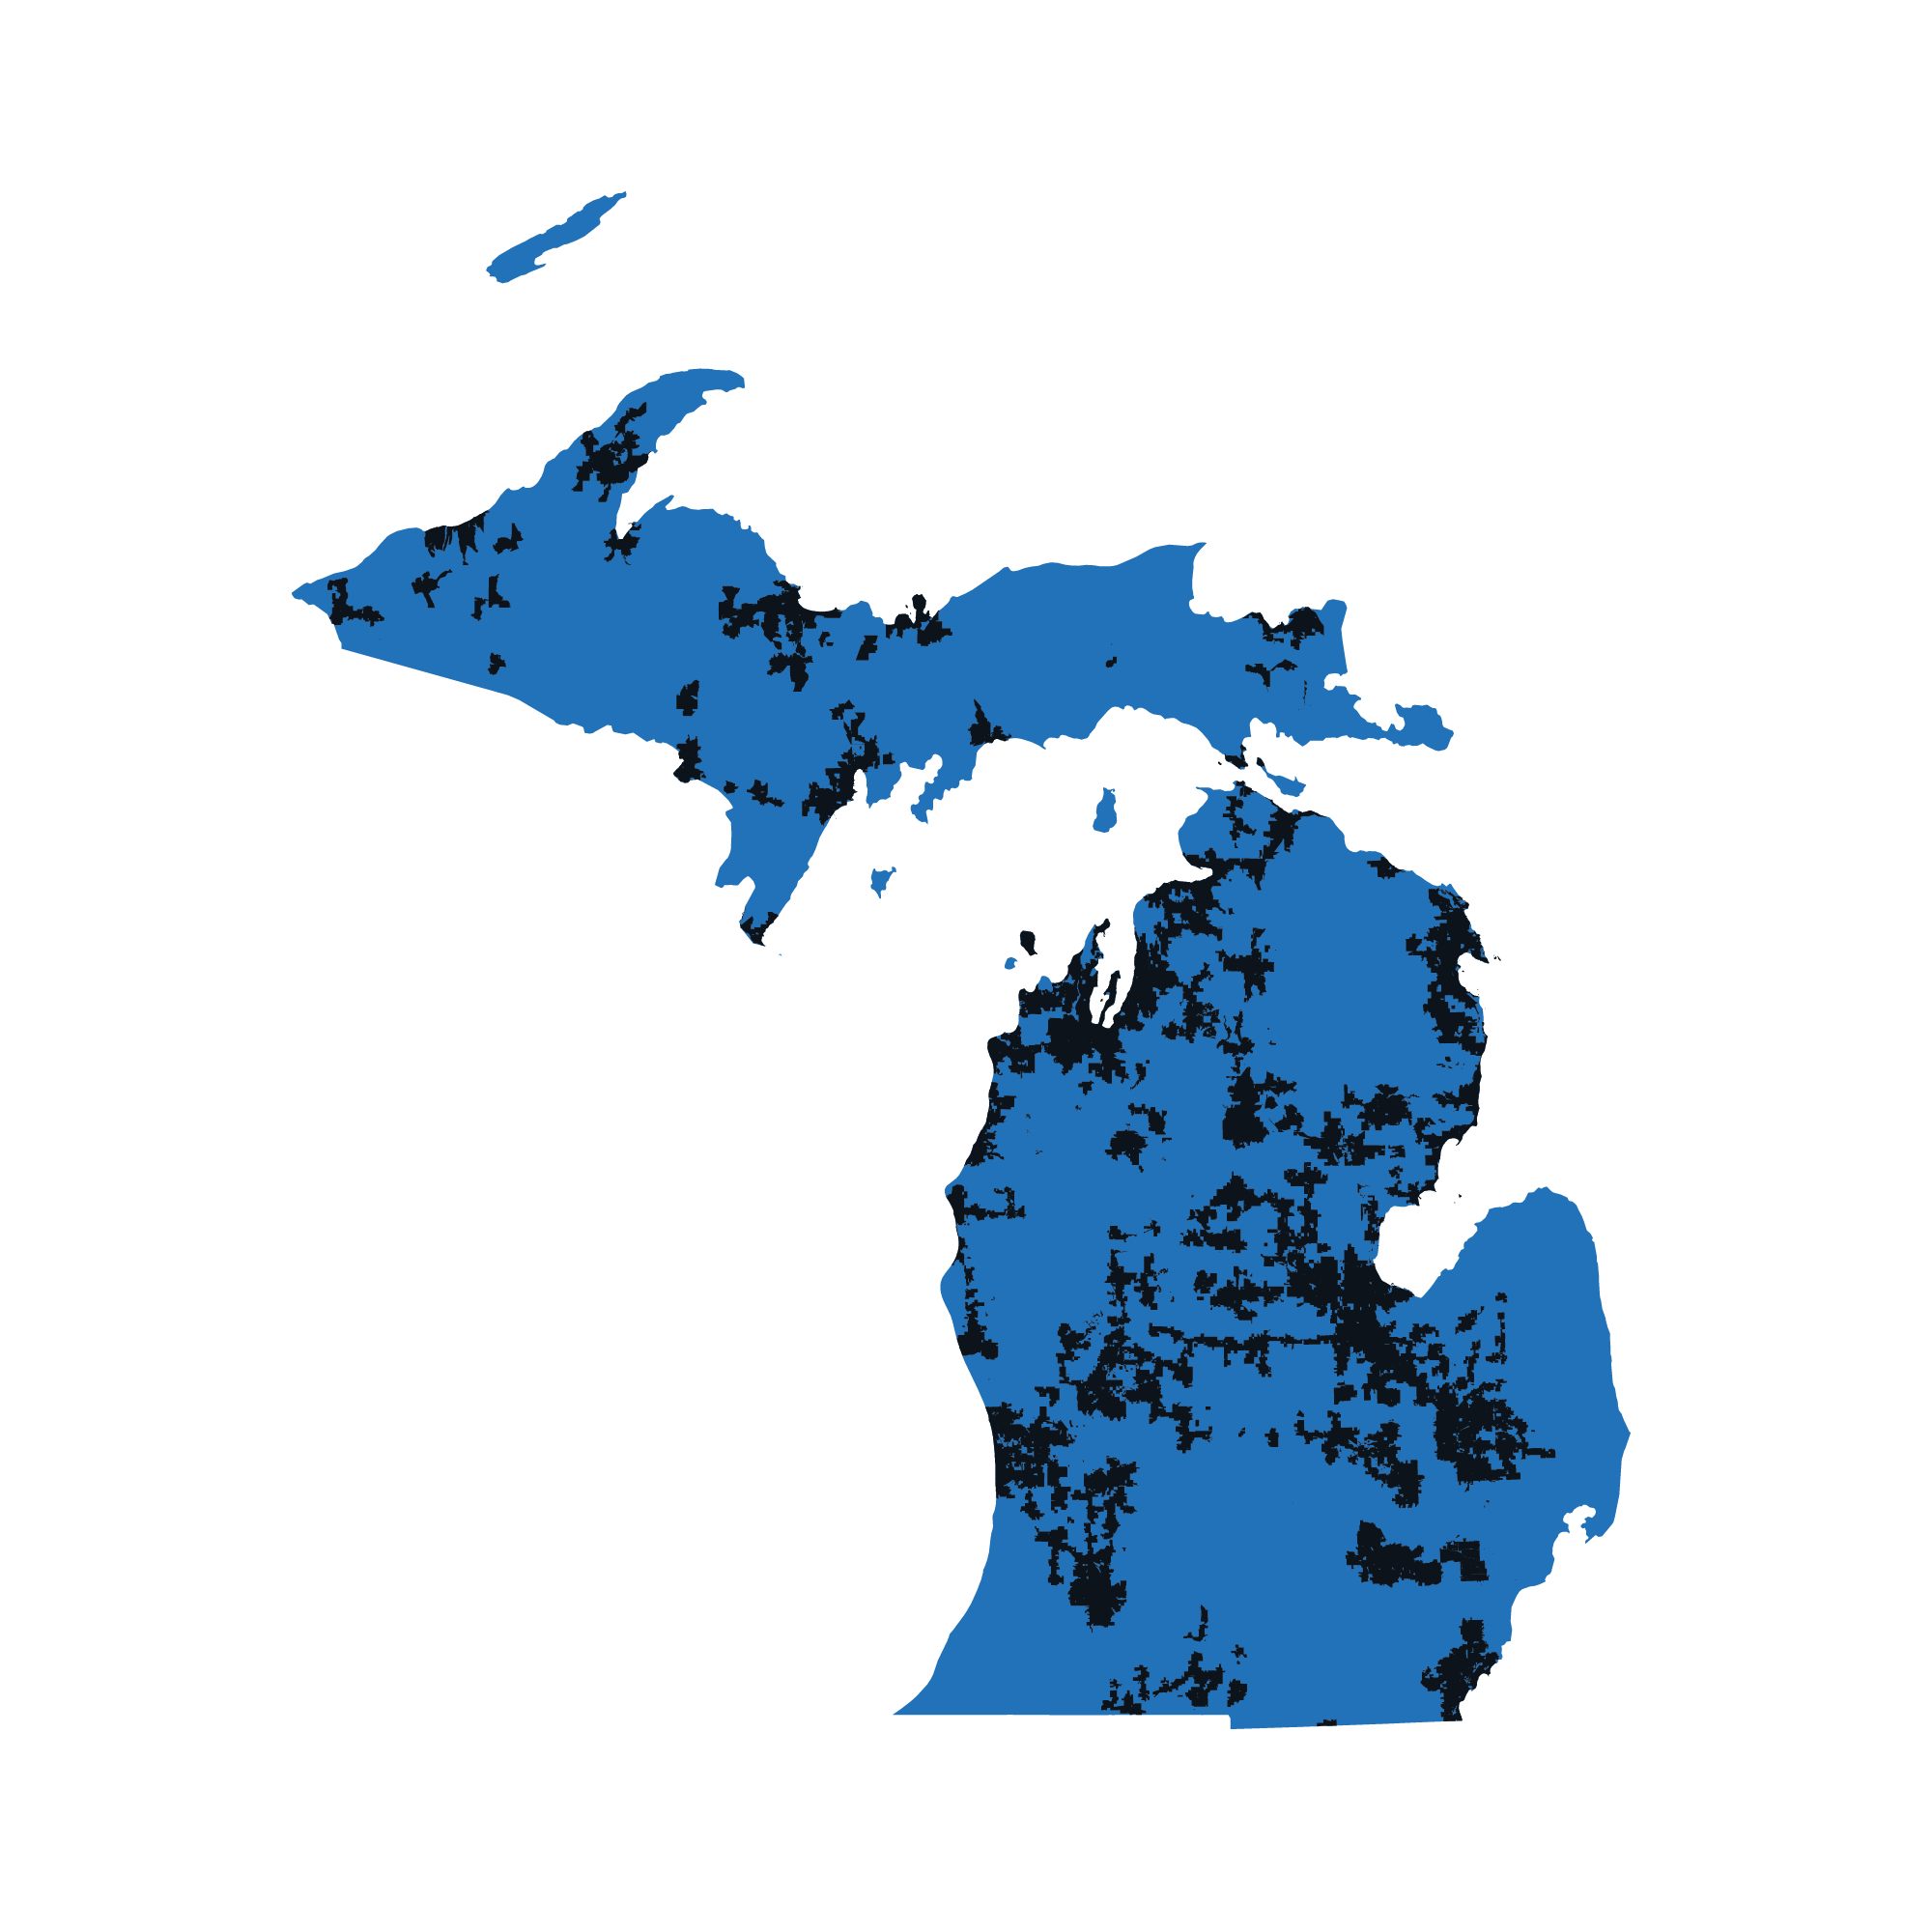 Michigan map data image